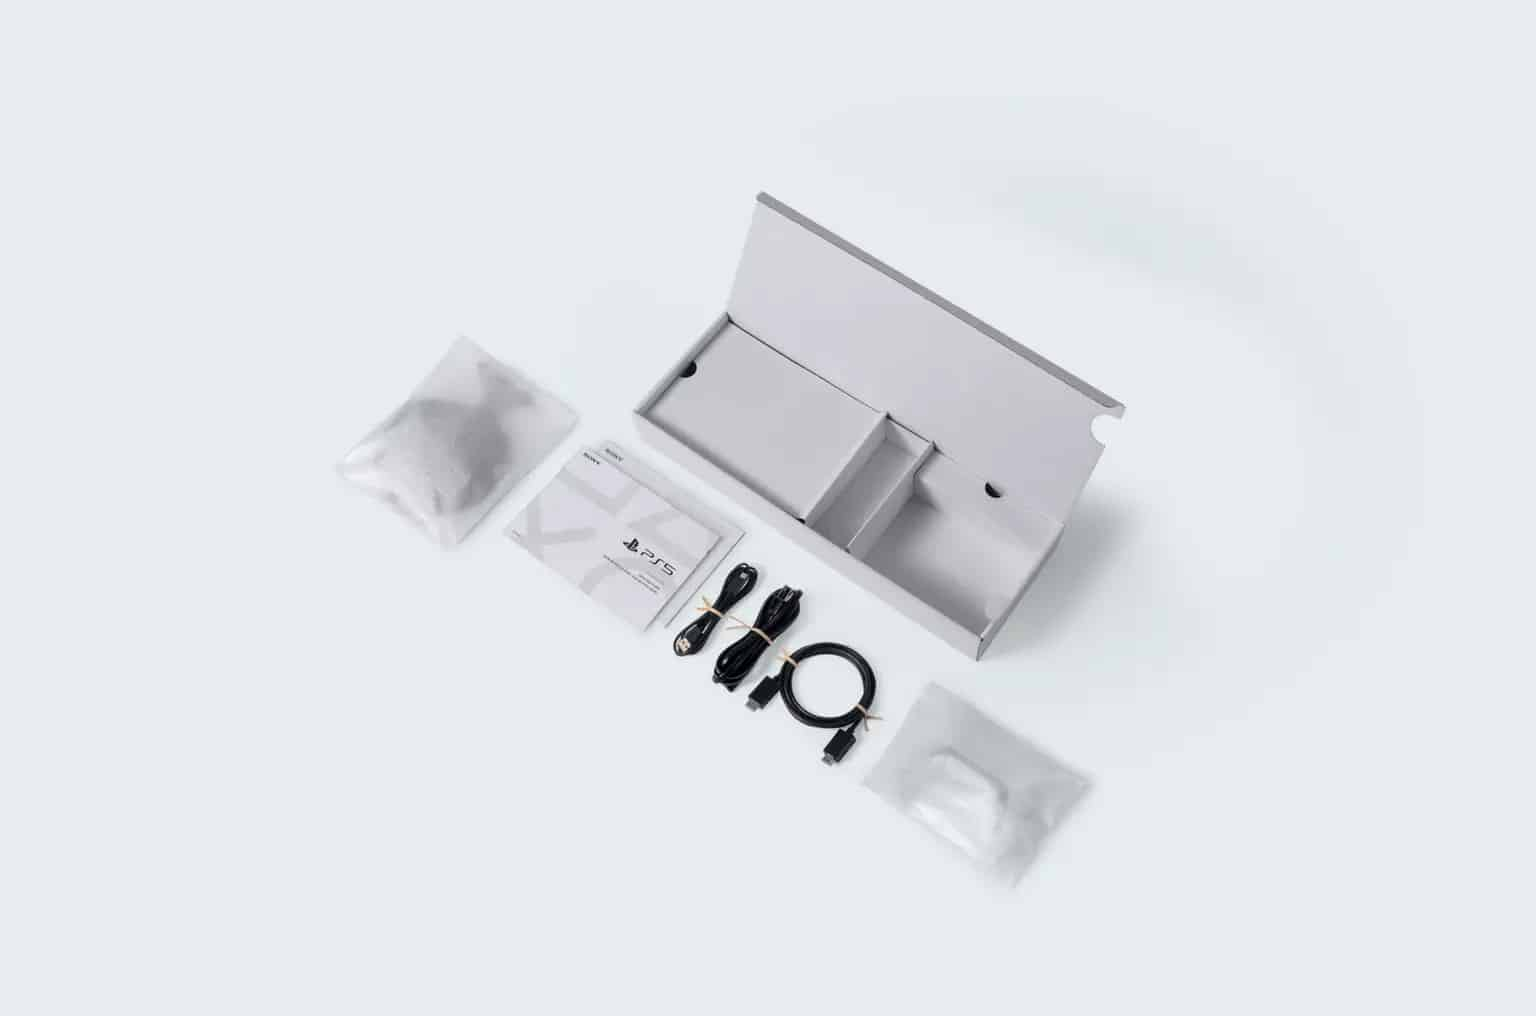 Packaging PS5 Recyclable